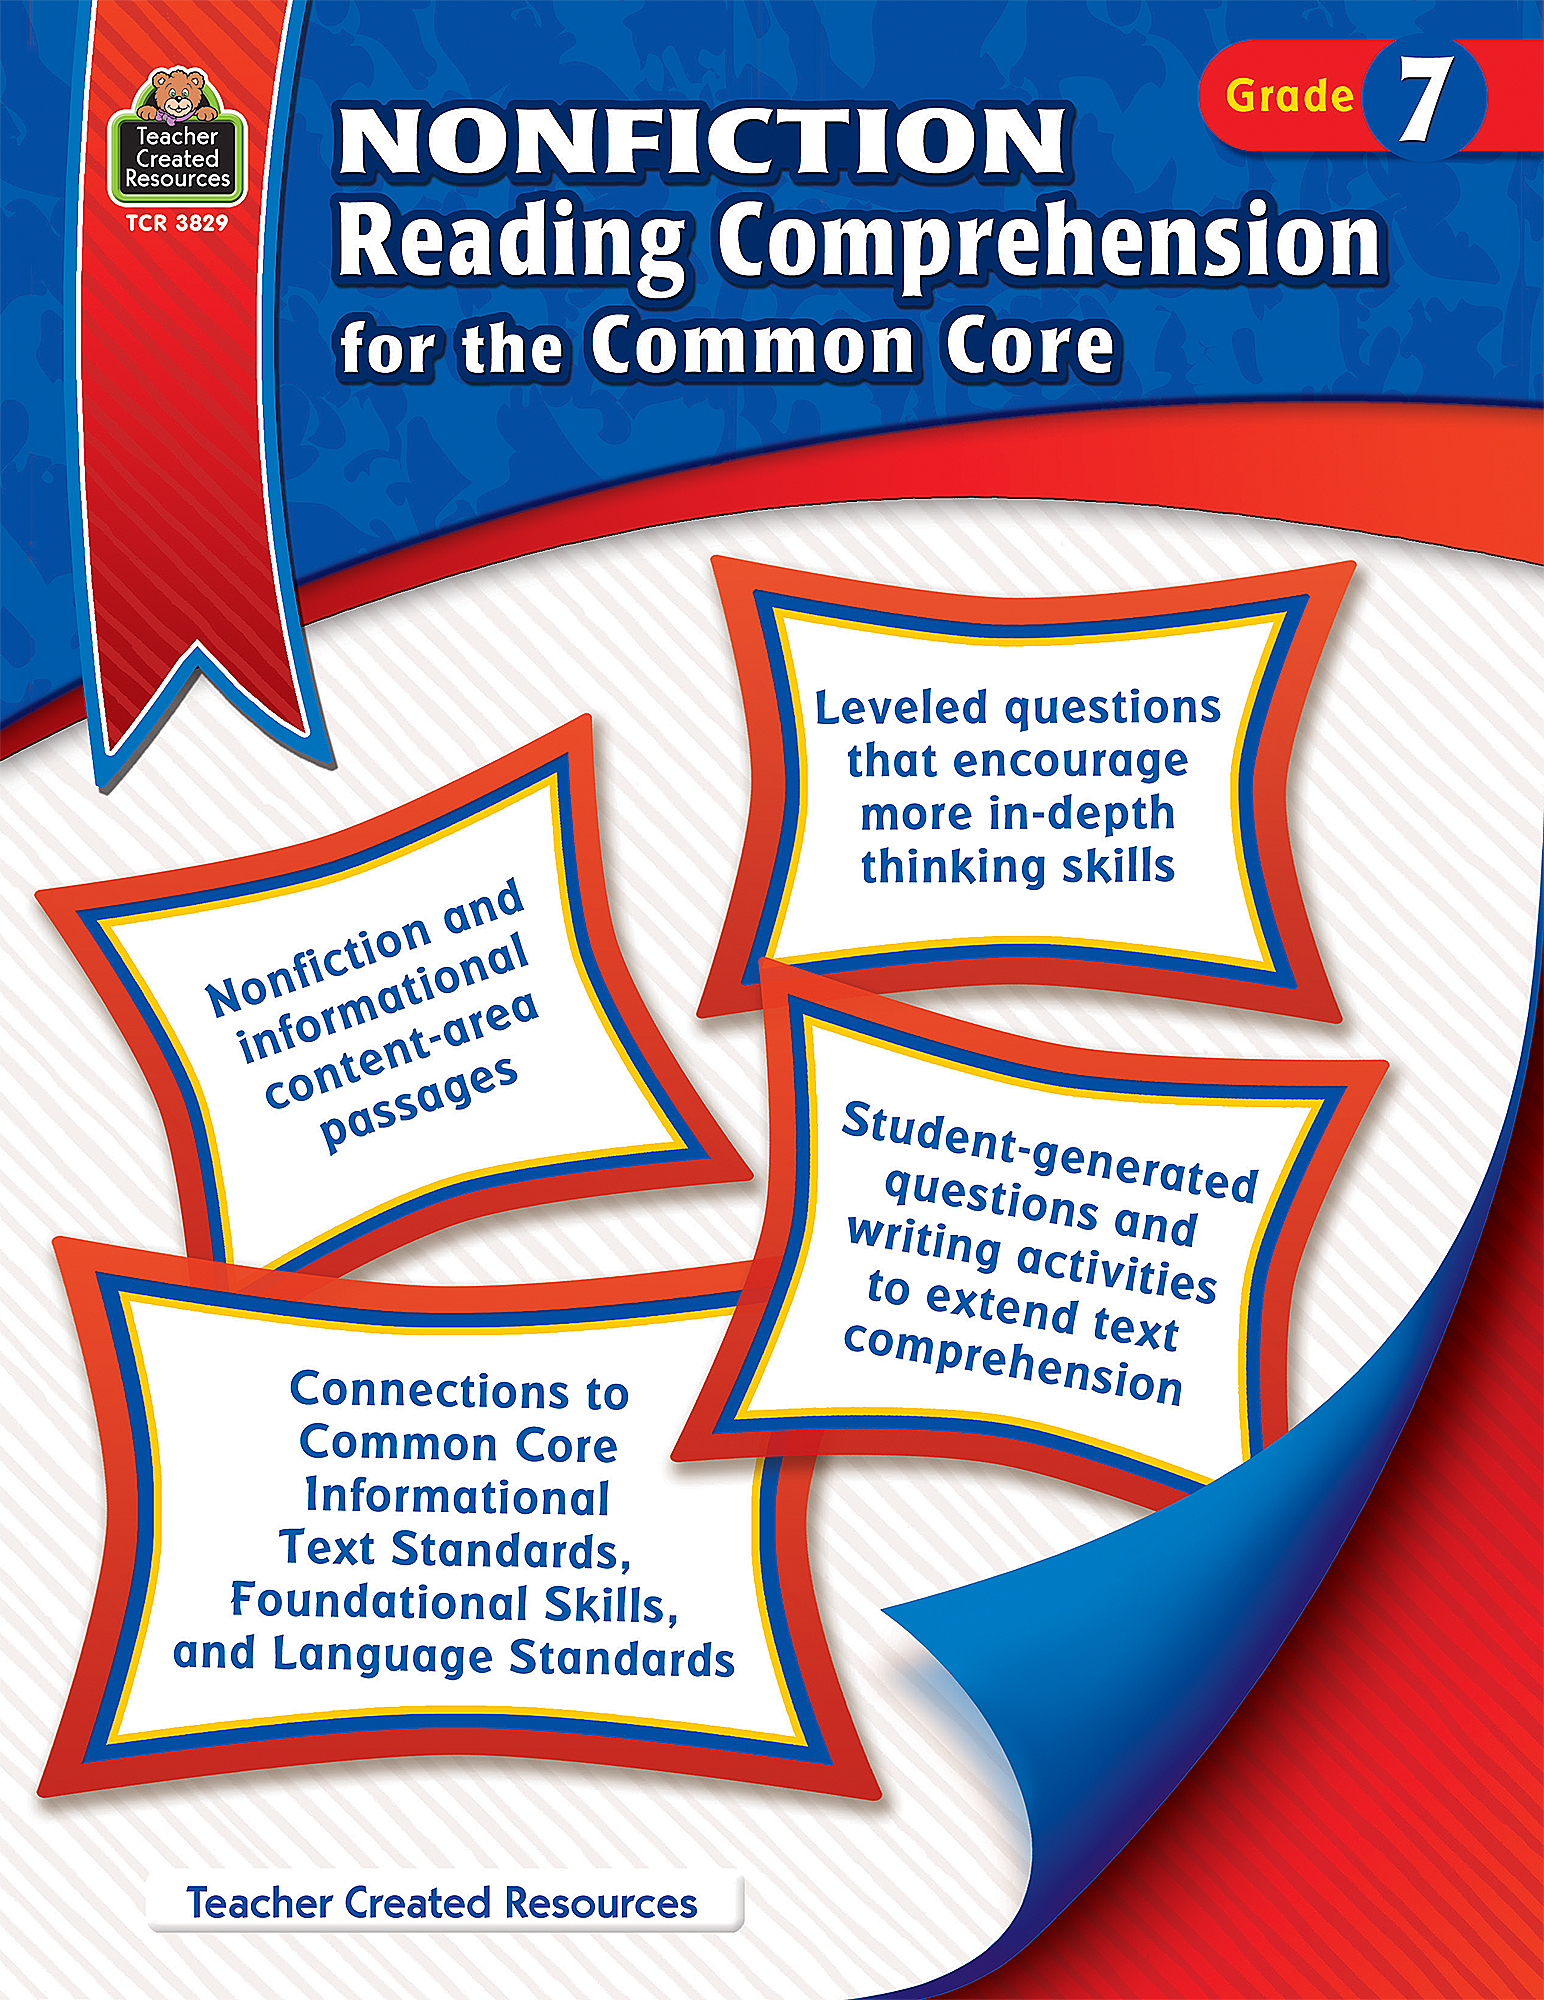 worksheet Common Core Reading Comprehension Worksheets 4th Grade nonfiction reading comprehension for the common core grade 7 tcr3829 teacher created resources